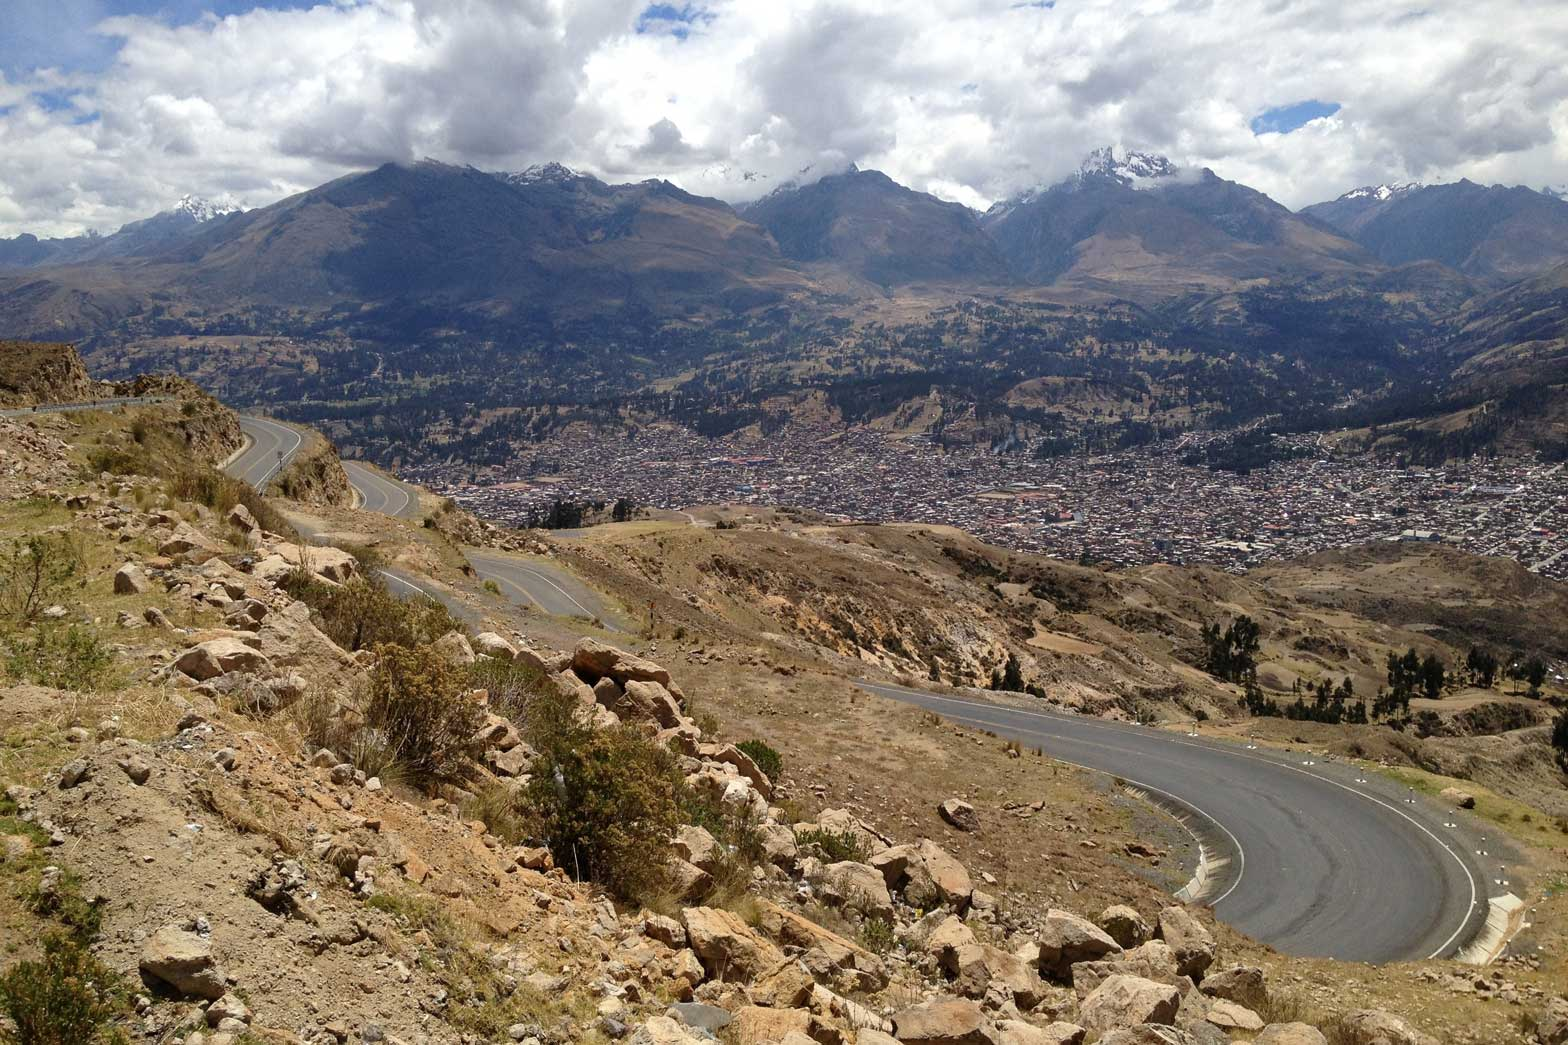 Scenic view of Huaraz in the mountains, Peru